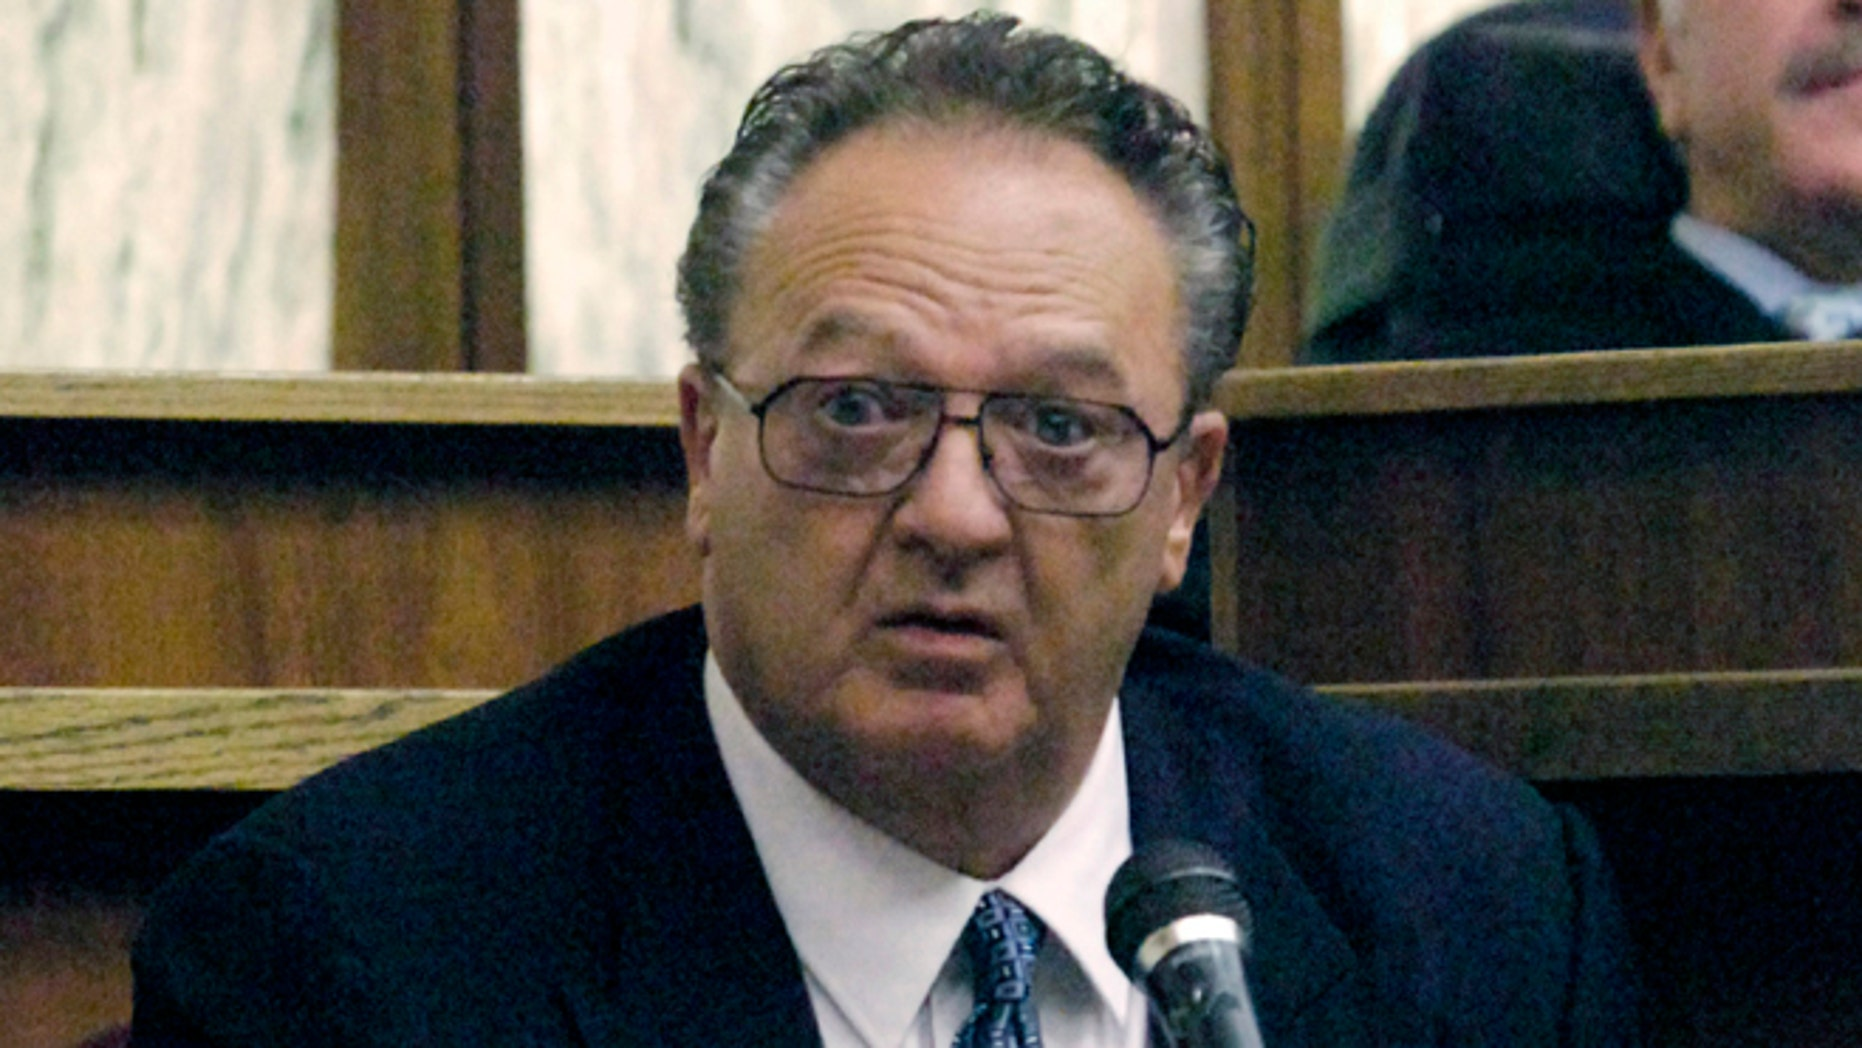 Sept. 17, 2008: John Martorano is questioned about his plea agreement in exchange for testifying against former FBI agent John Connolly, in the Miami Courthouse. Connolly is accused of helping the Boston mob murder Miami gambling executive John Callahan in 1982, at Miami International Airport.  Martorano, who served 12 years in prison after a plea deal, and who has admitted killing 20 people, is expected to testify at the trial of James 'Whitey' Bulger in federal court in Boston. (AP/Marice Cohn Band, Pool, File)